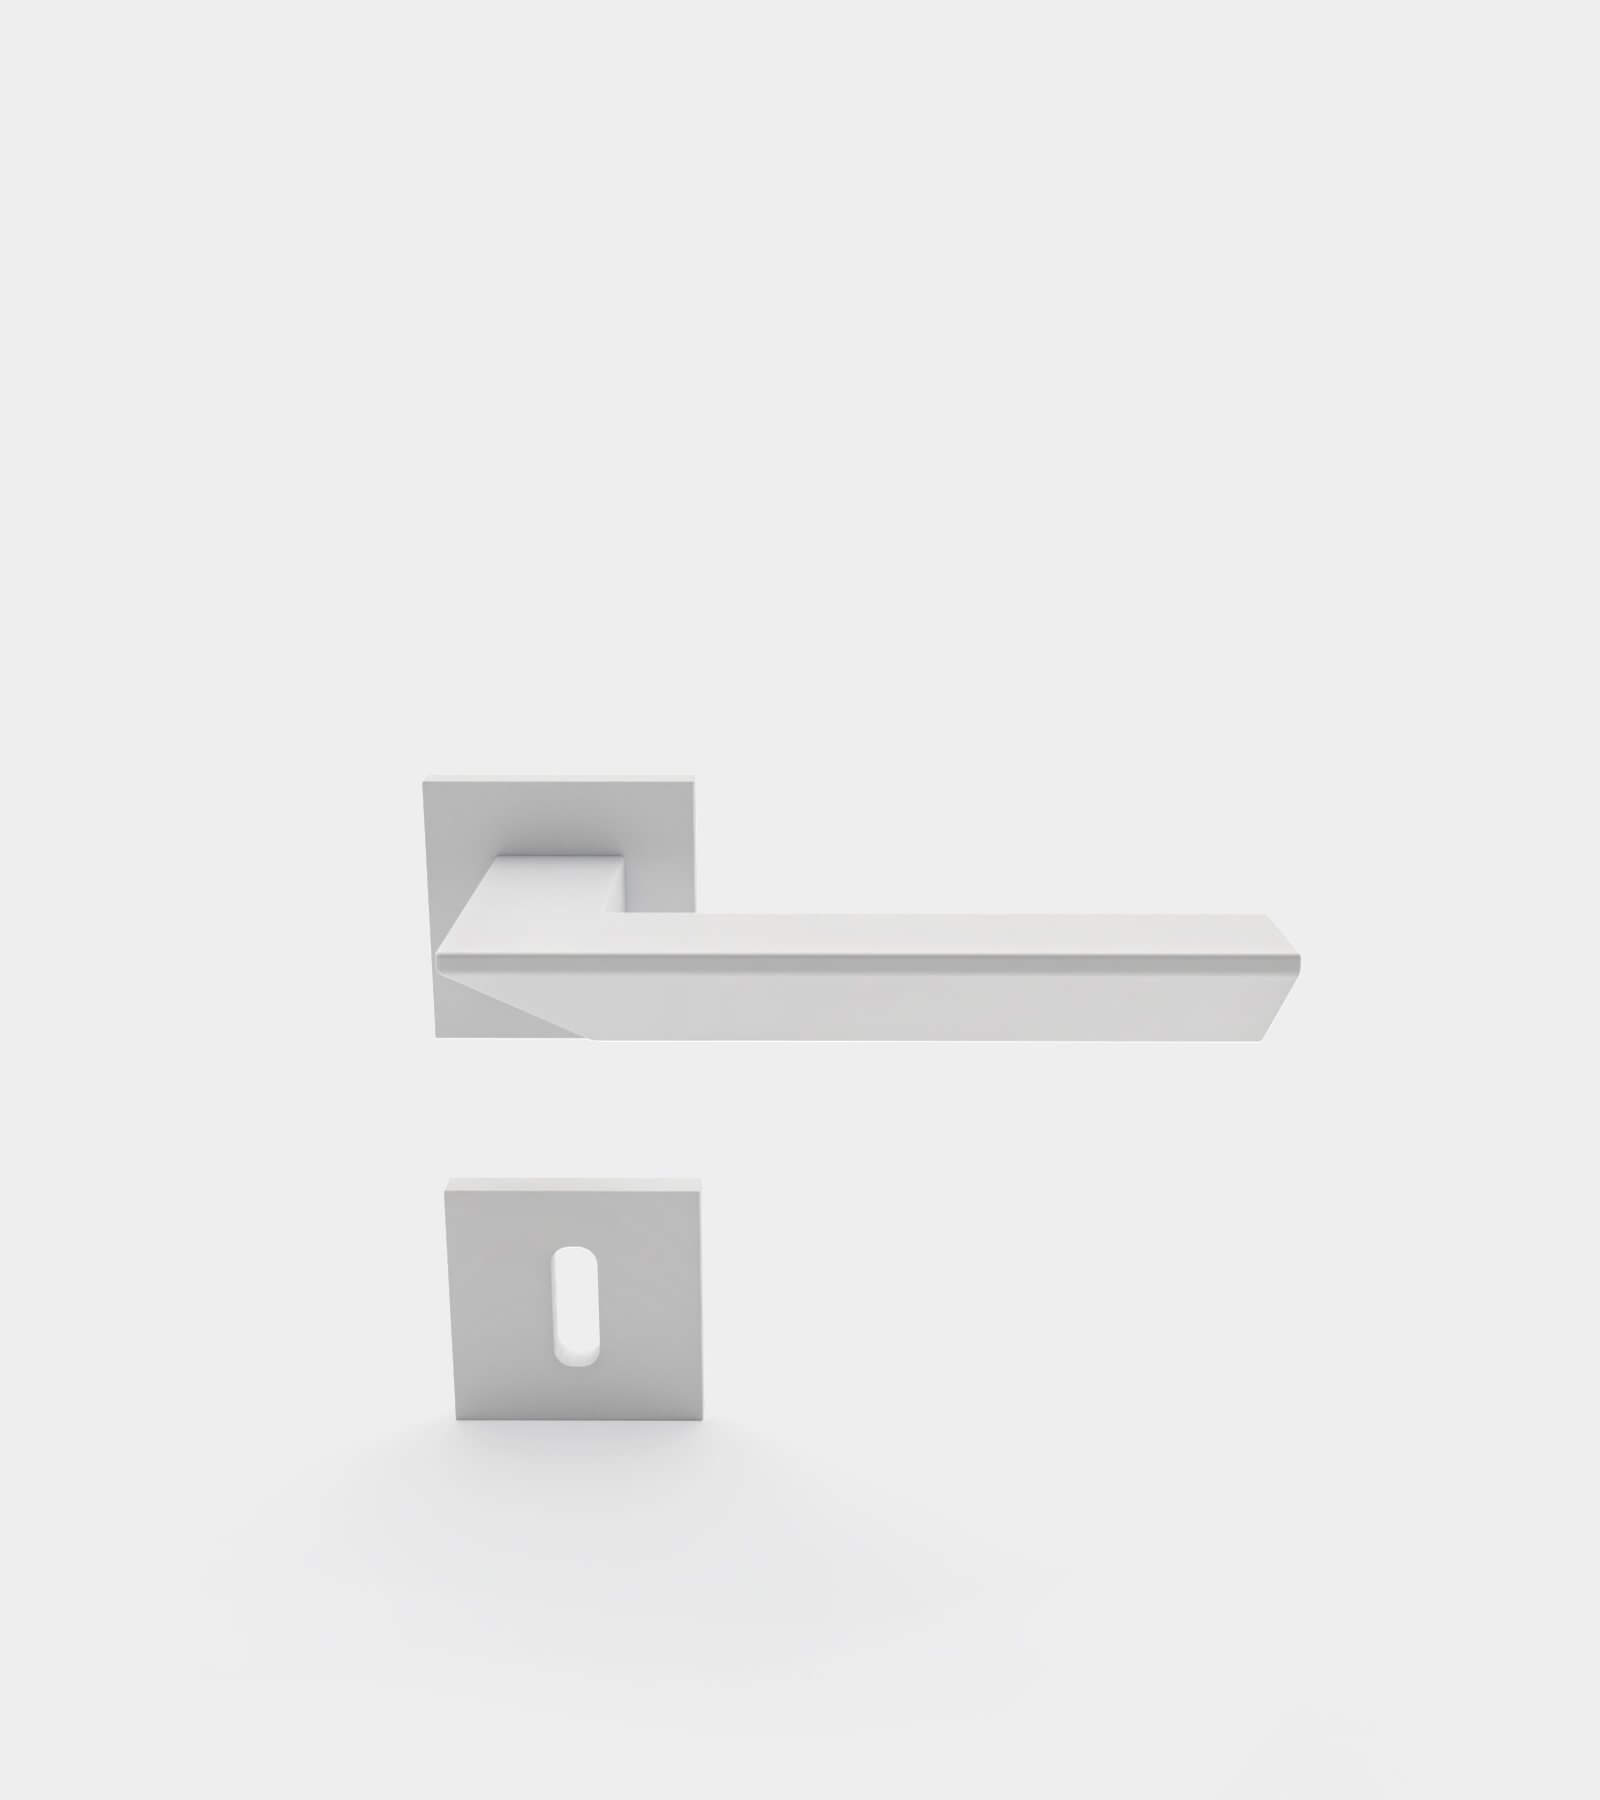 Door handle set for interior 2 - 3D Model